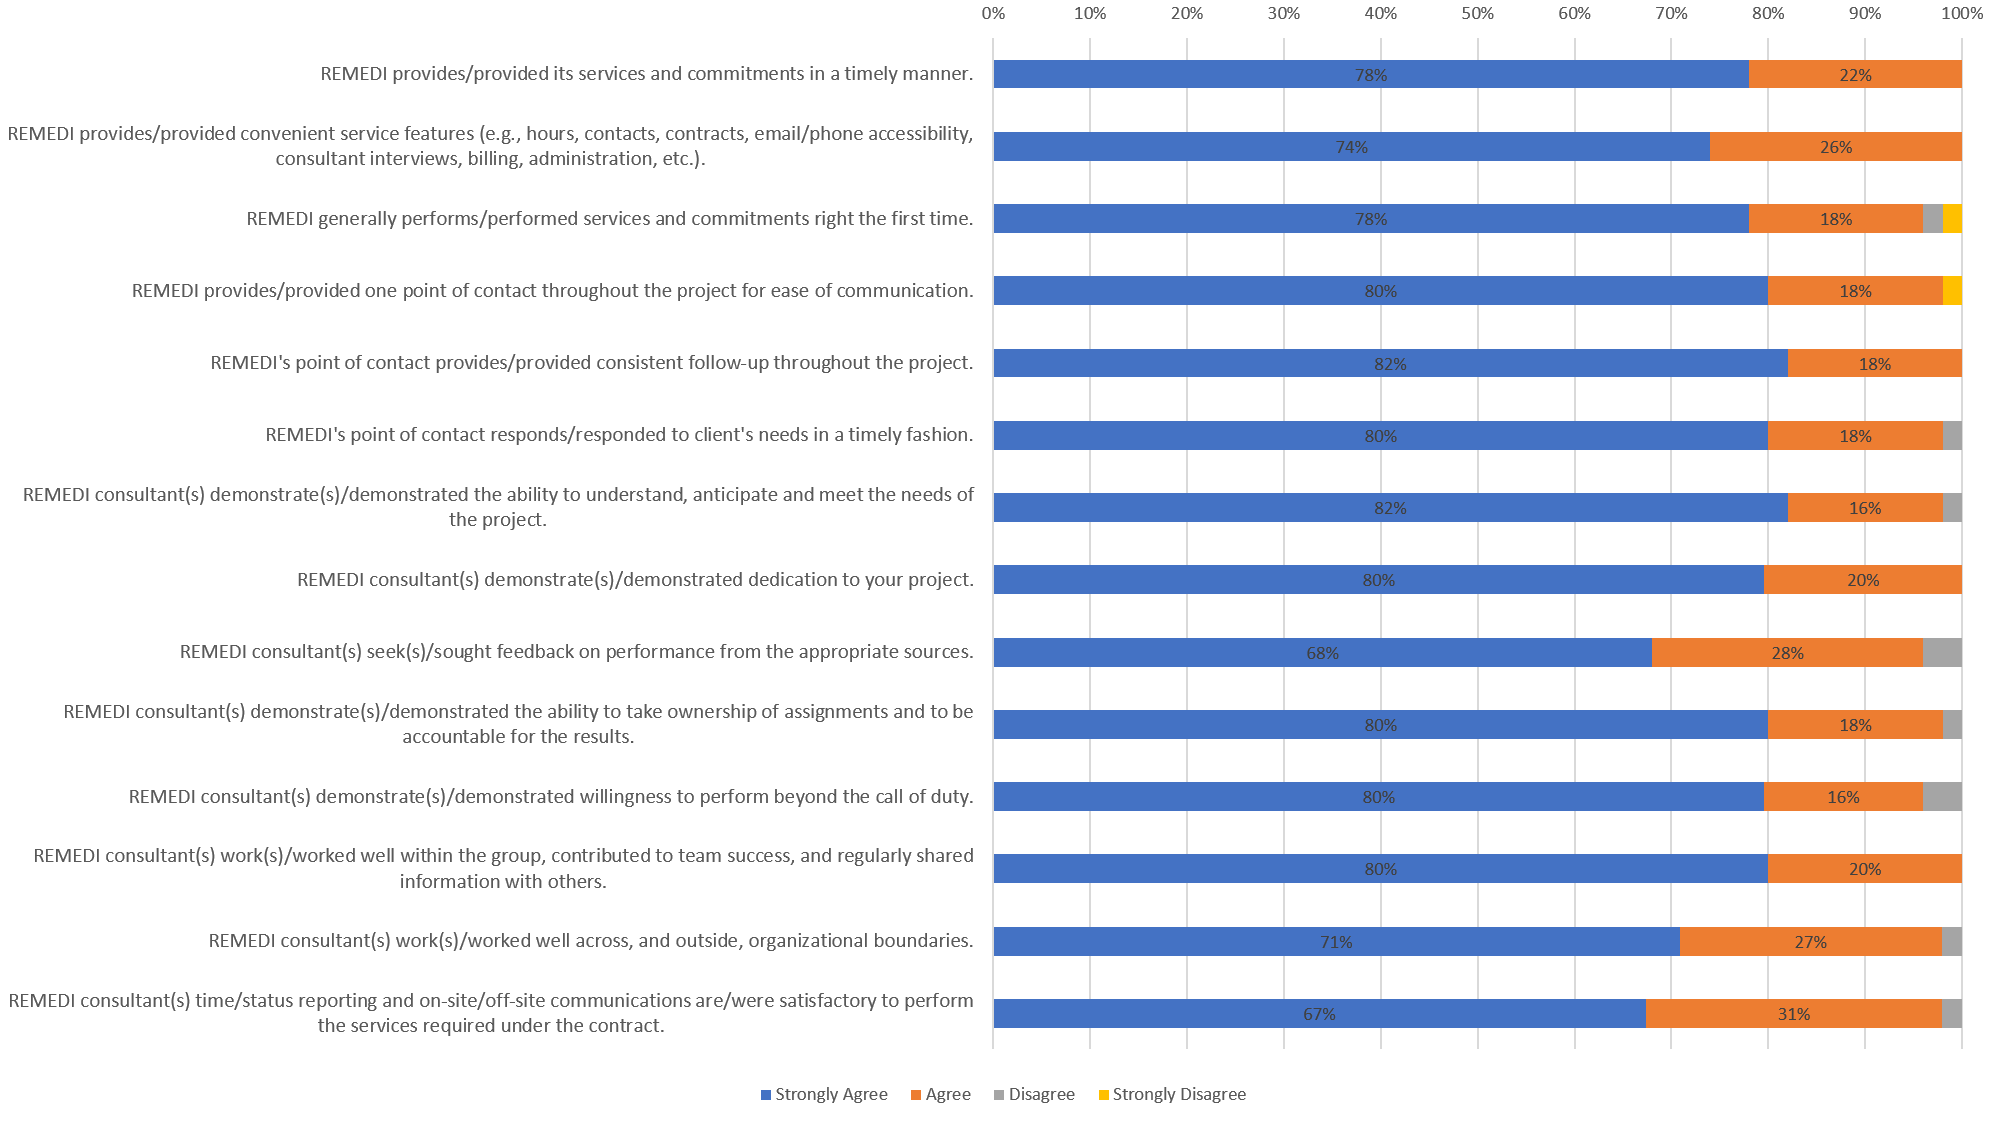 about-customer-survey-results